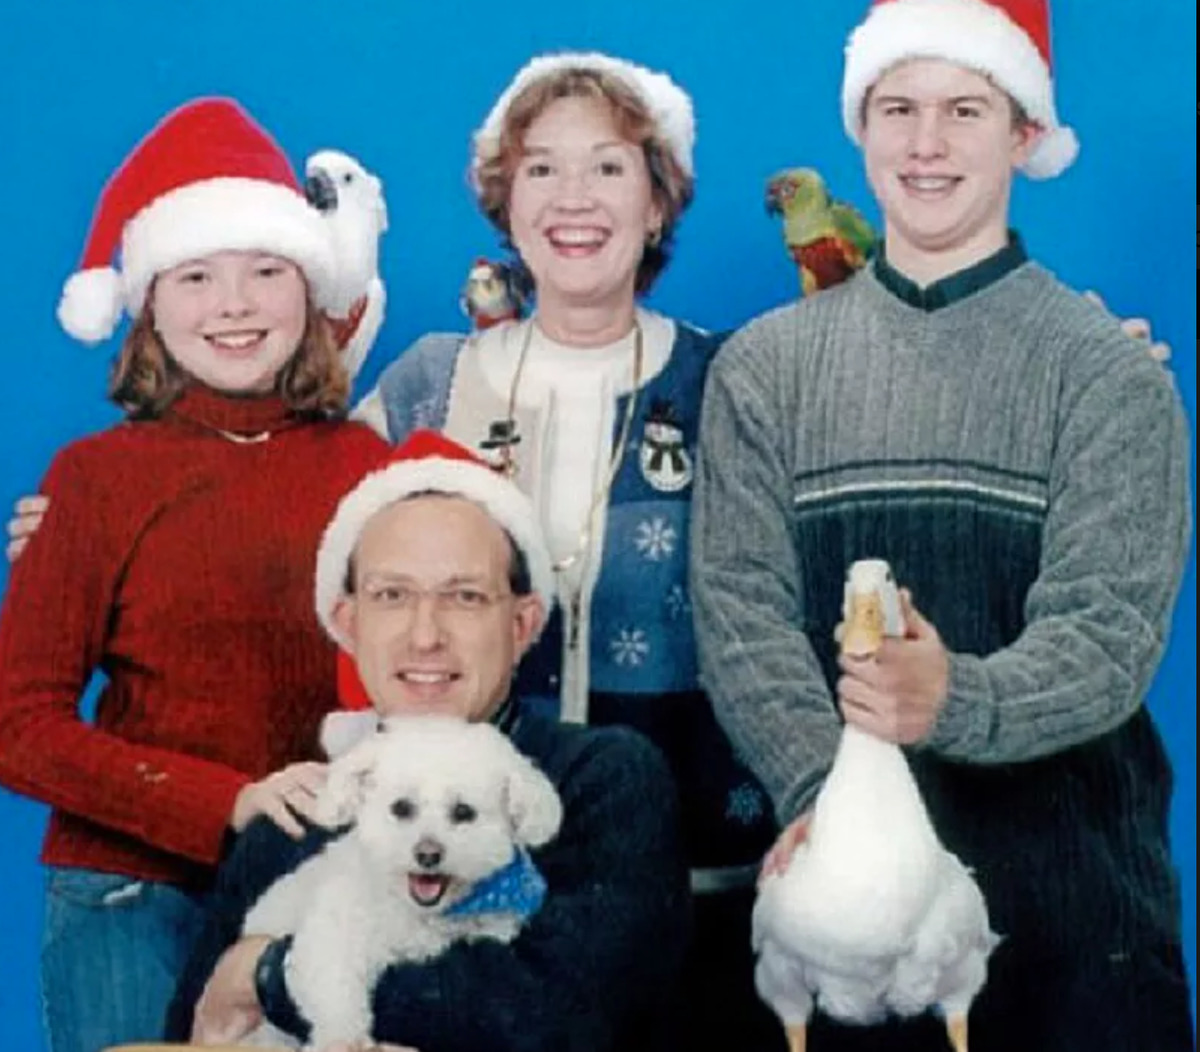 family has many birds ,including a duck, in Christmas photo